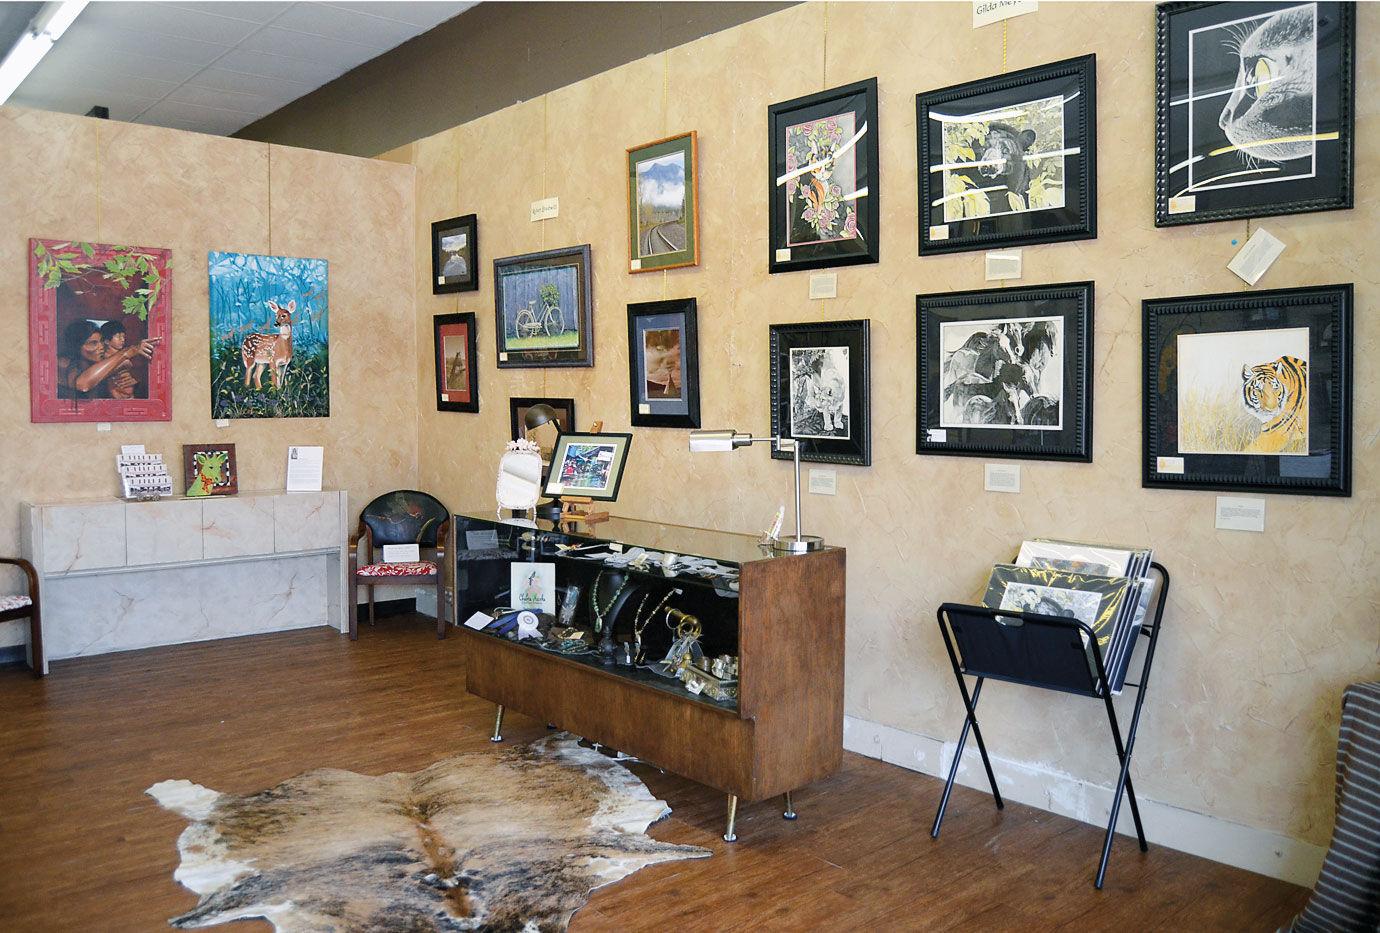 sofa art gallery sofas de canto com chaise e puff announces its grand opening news mcalesternews pictured are some of the many pieces available at new southeast fine located 30 east choctaw avenue is open